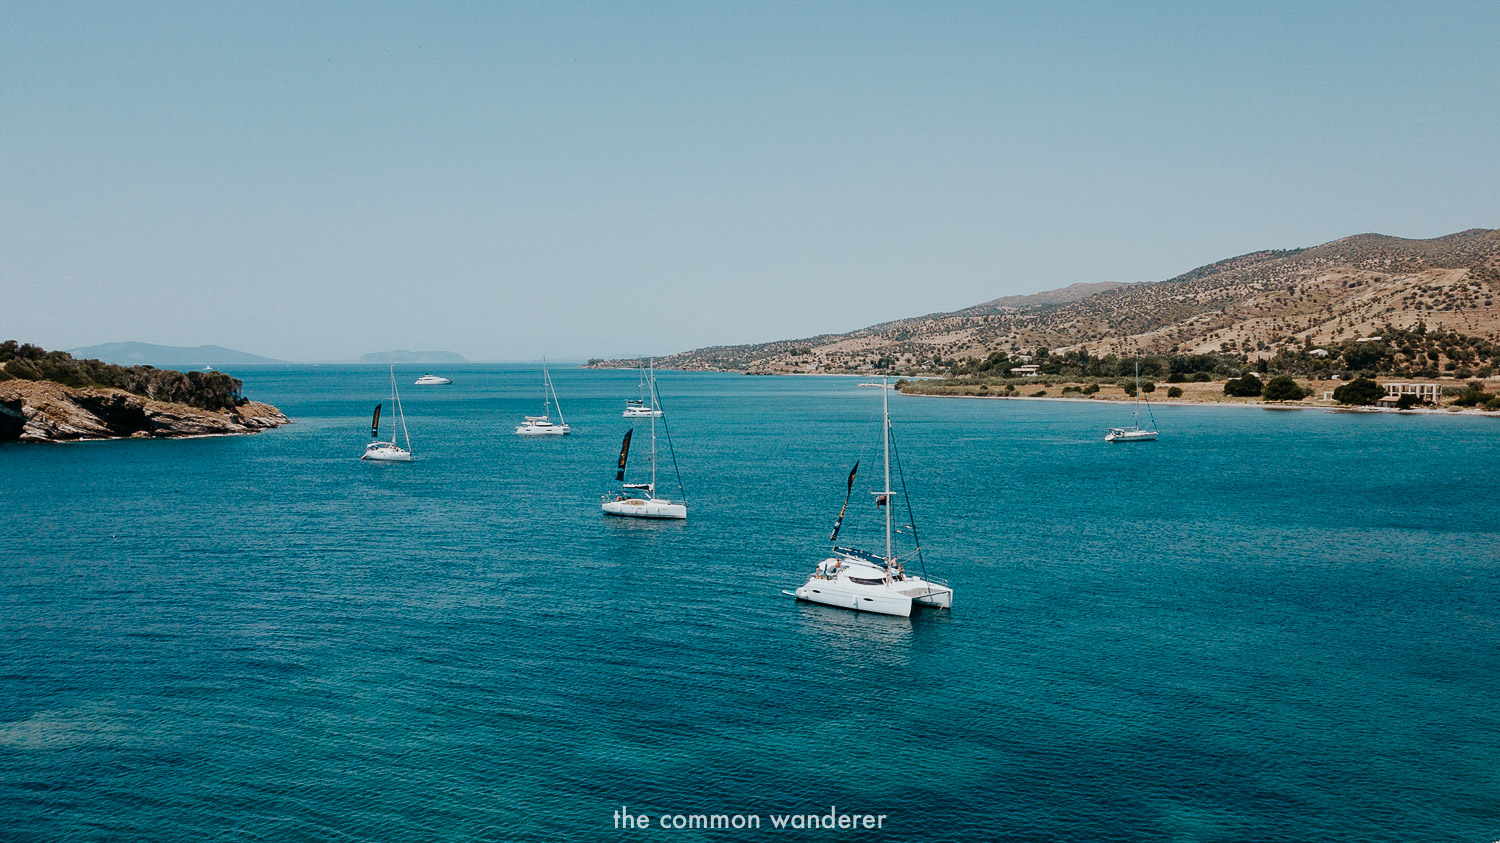 The yachts of Medsailors